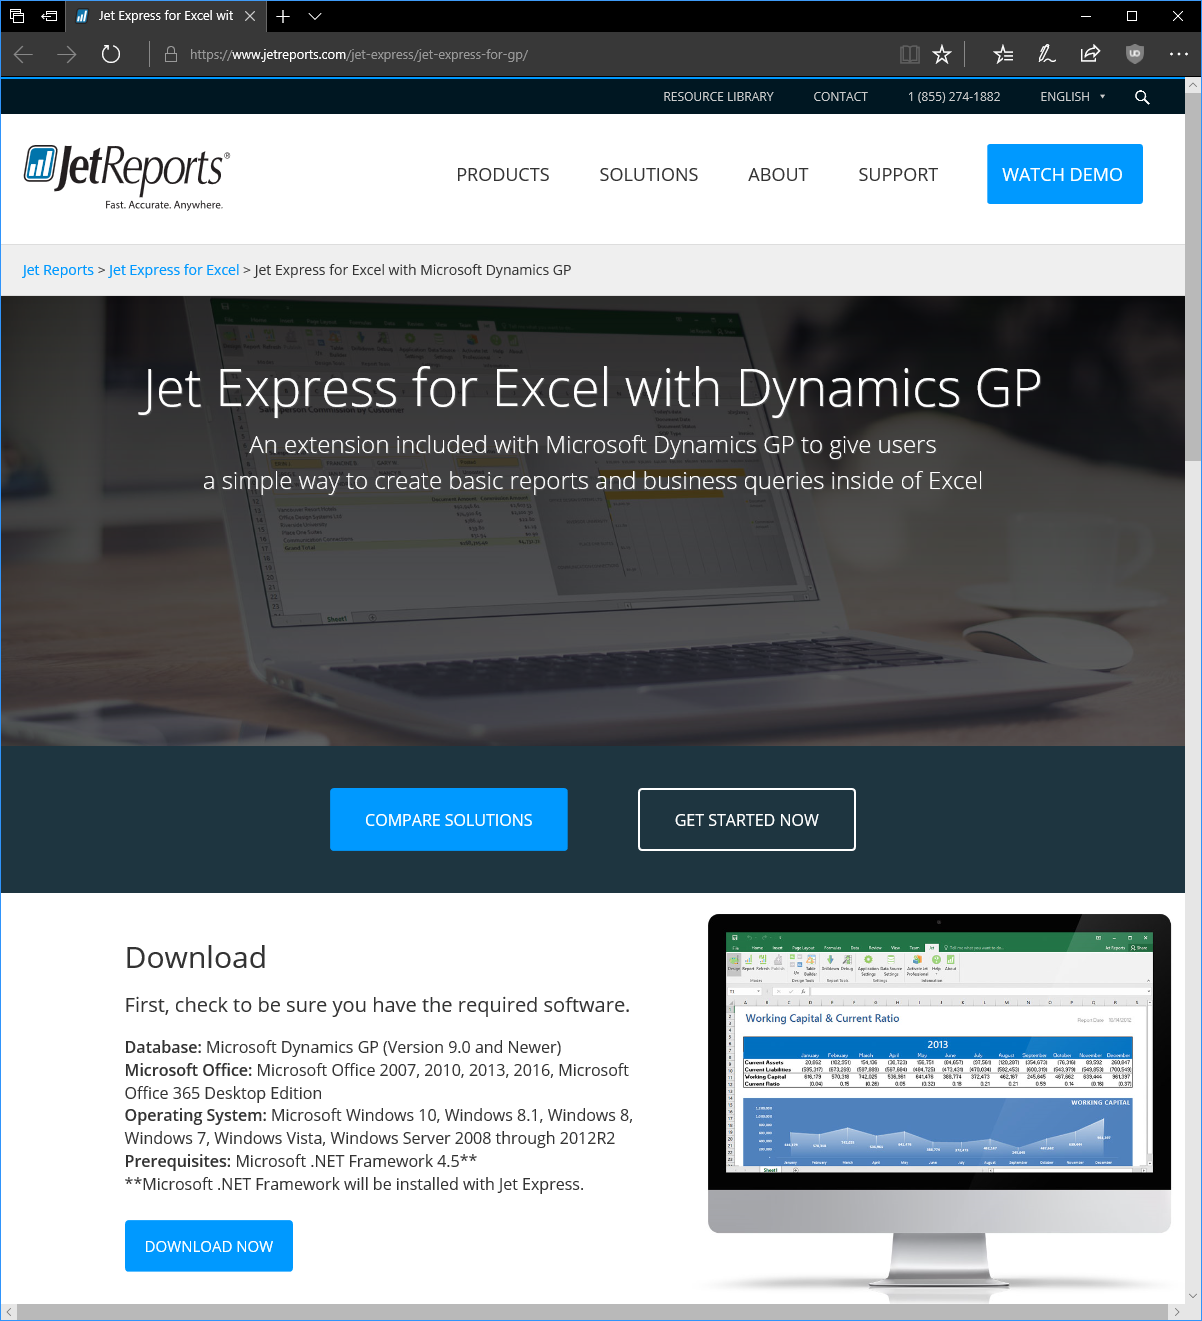 Jet Express for Excel with Dynamics GP download